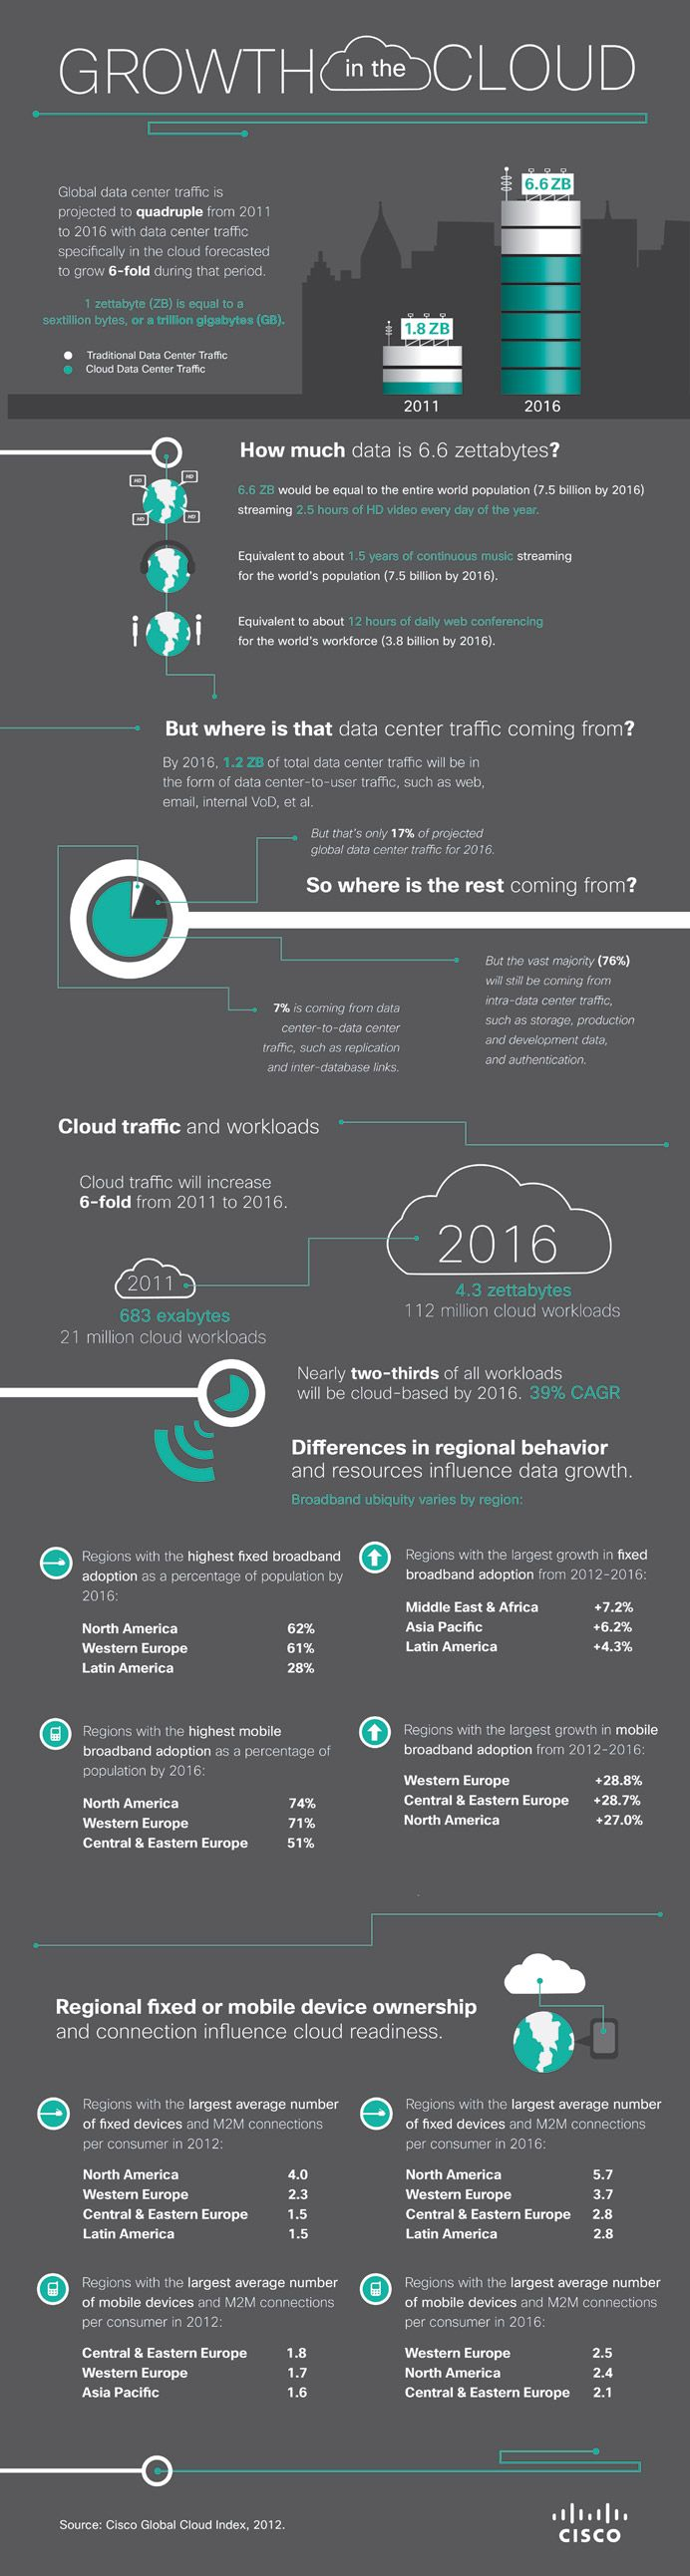 Global cloud IP traffic will grow 12-fold while global data center traffic is growing 4-fold by 2016. #cloud #Infographic